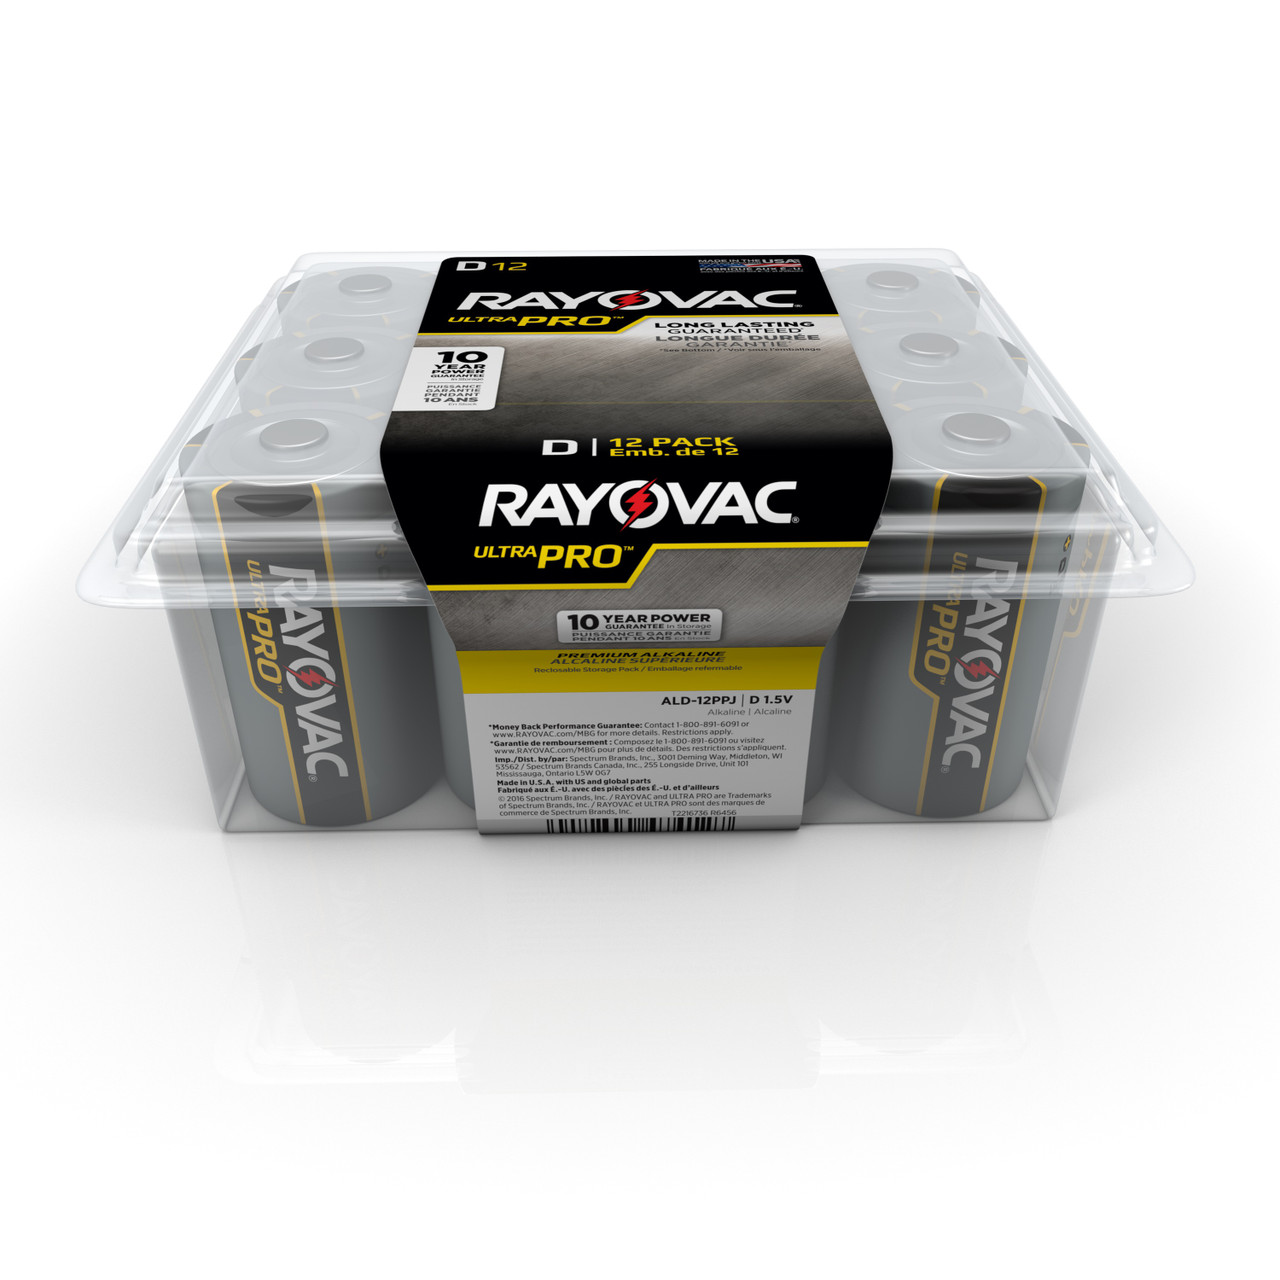 Energizer-Rayovac Battery, Type Alkaline, Voltage Rating 1.5V, Capacity 16.254Ah, Size Designation D, Size 34.2 MM Dia, 16.1 MM Height, Contents 12 Per Pack EDP: D